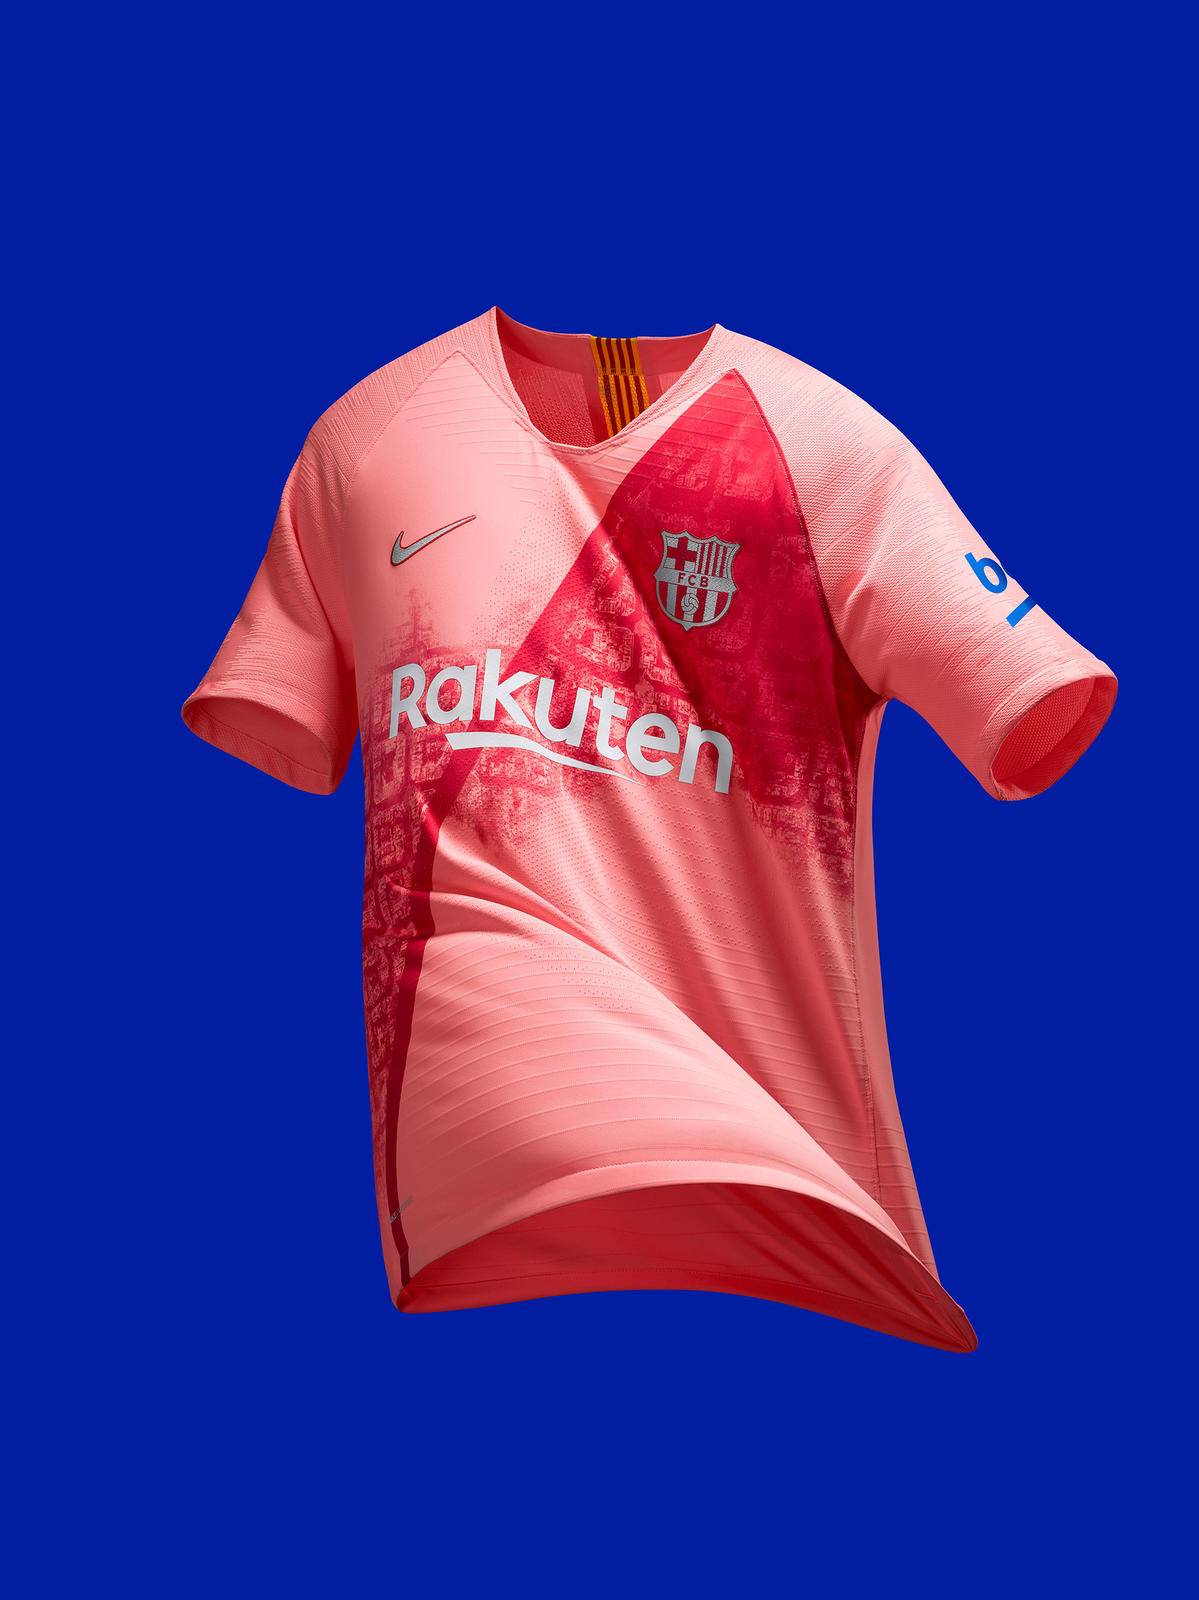 separation shoes d0d5f 2f2d1 FC Barcelona's 2018-19 Third Kit Continues a Bold and ...